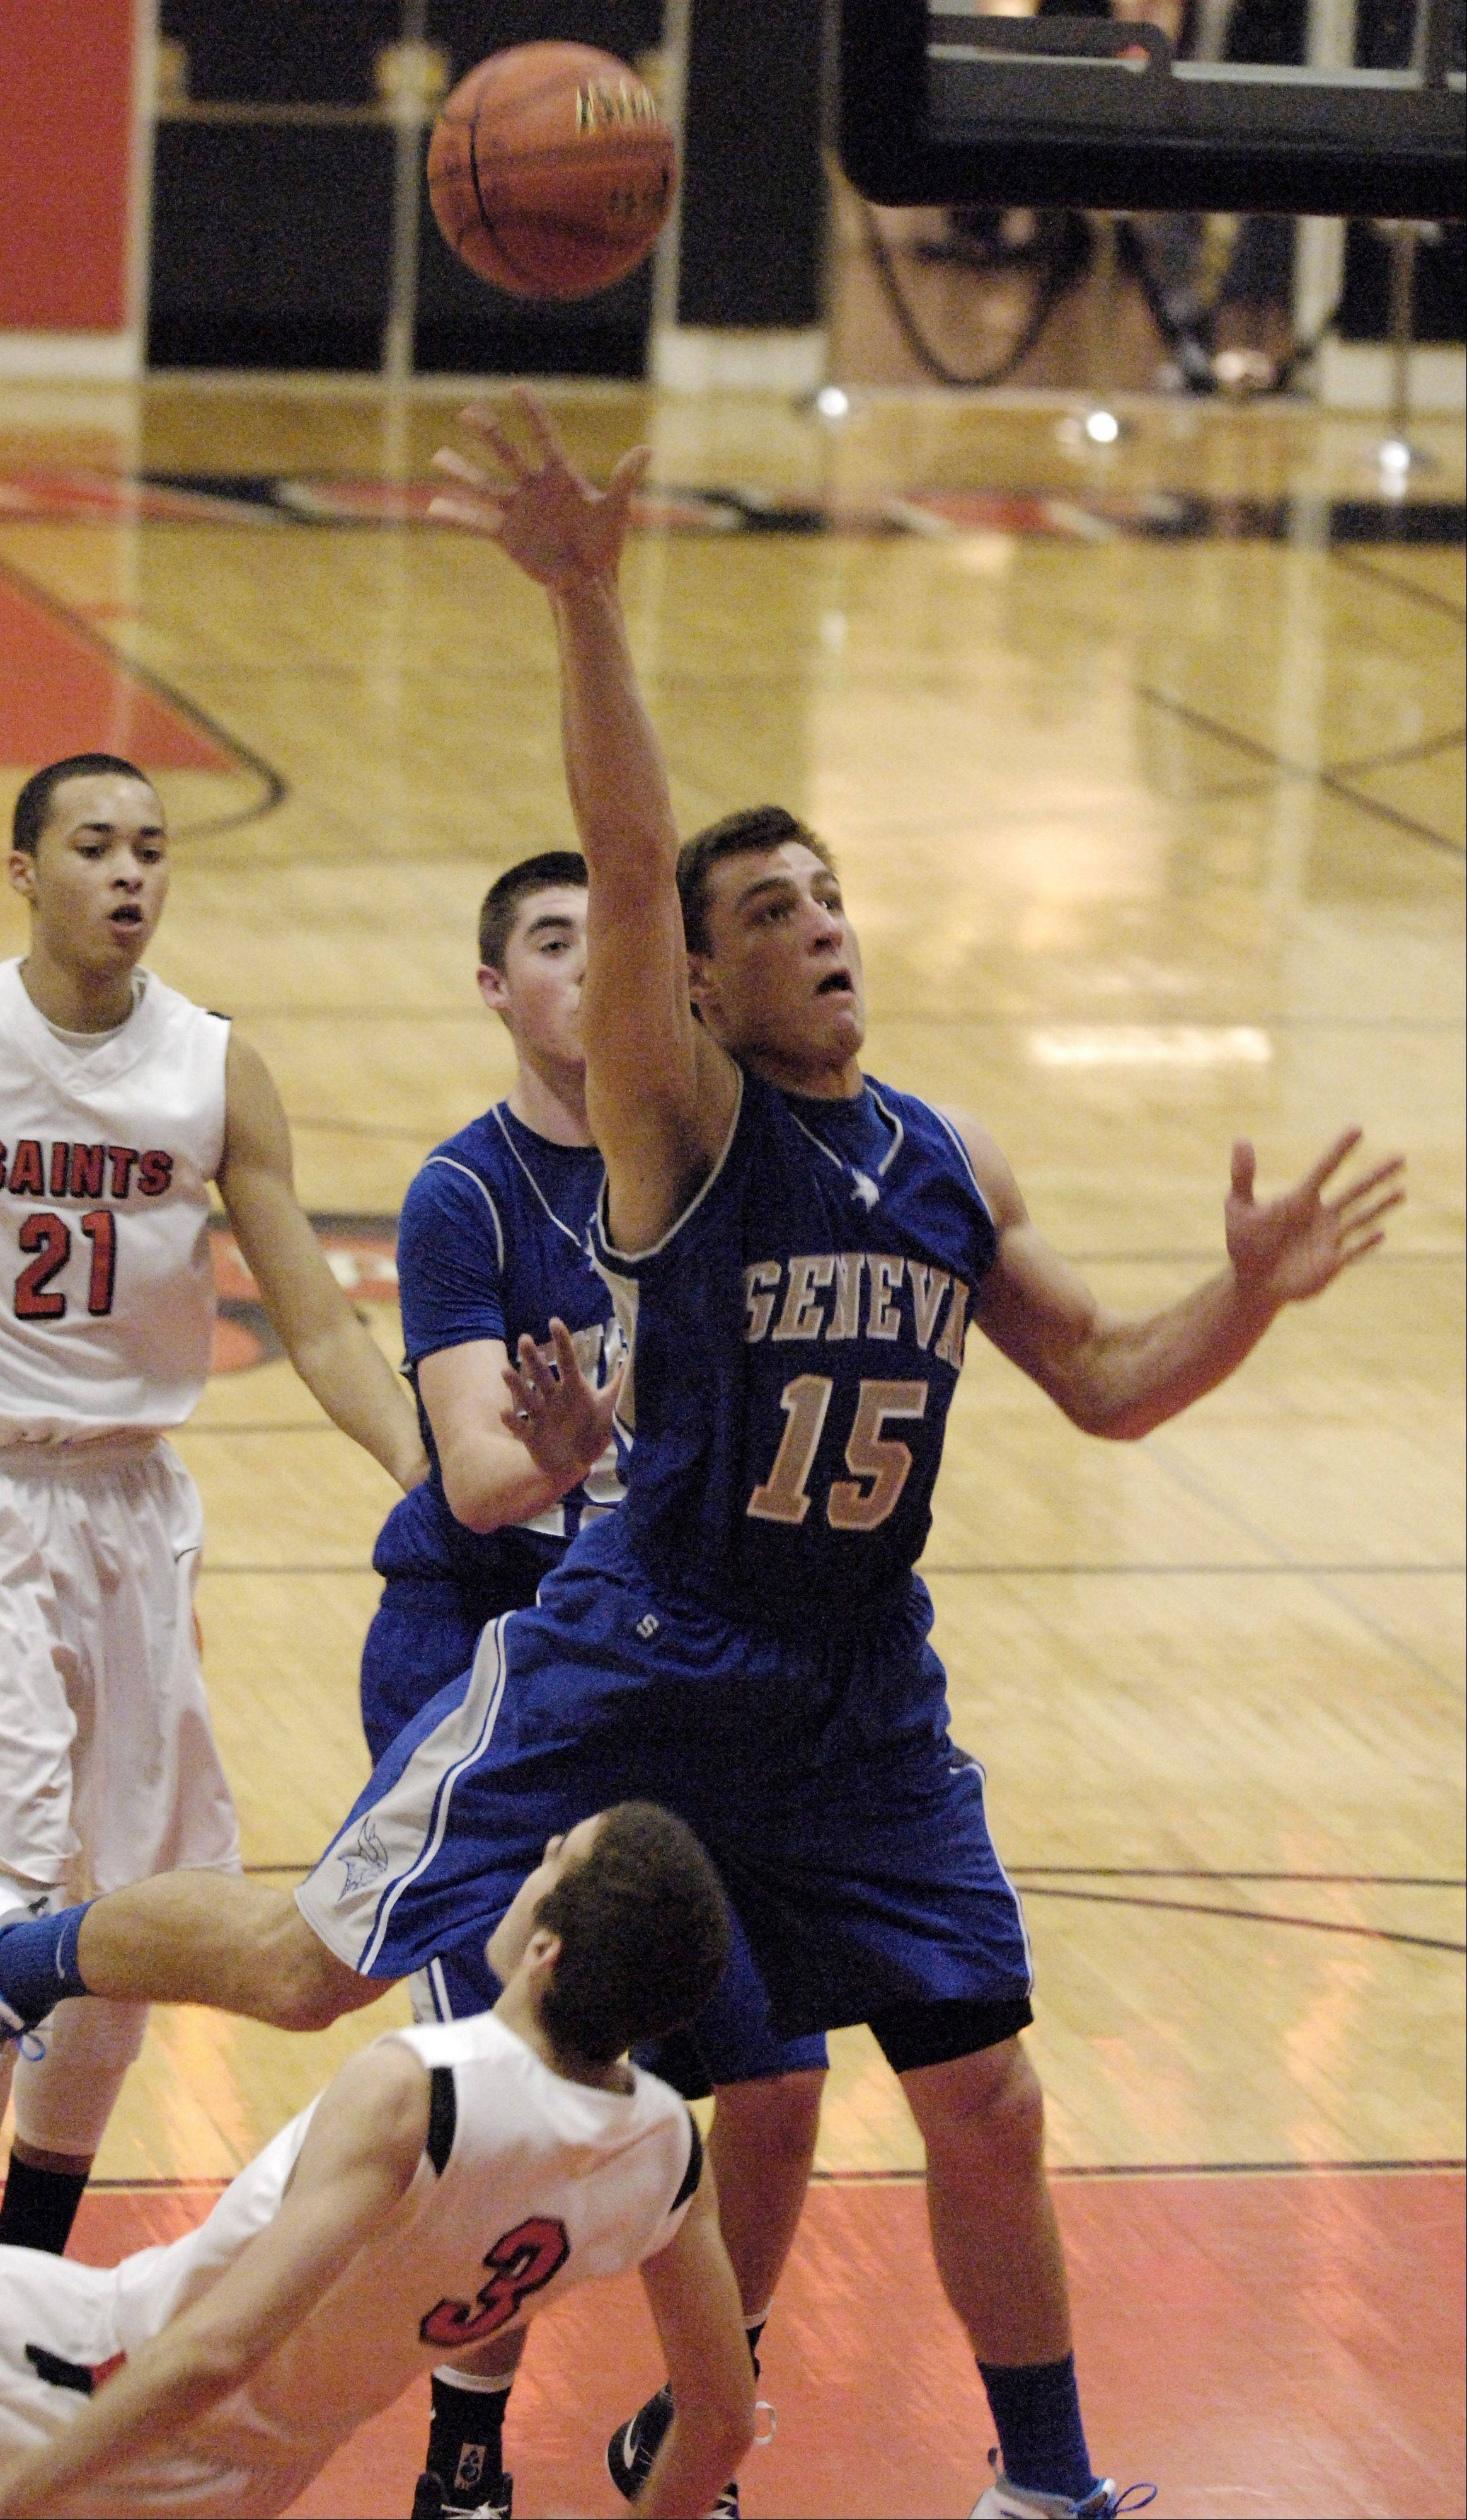 Geneva's Nate Brown puts up a shot against St. Charles East.